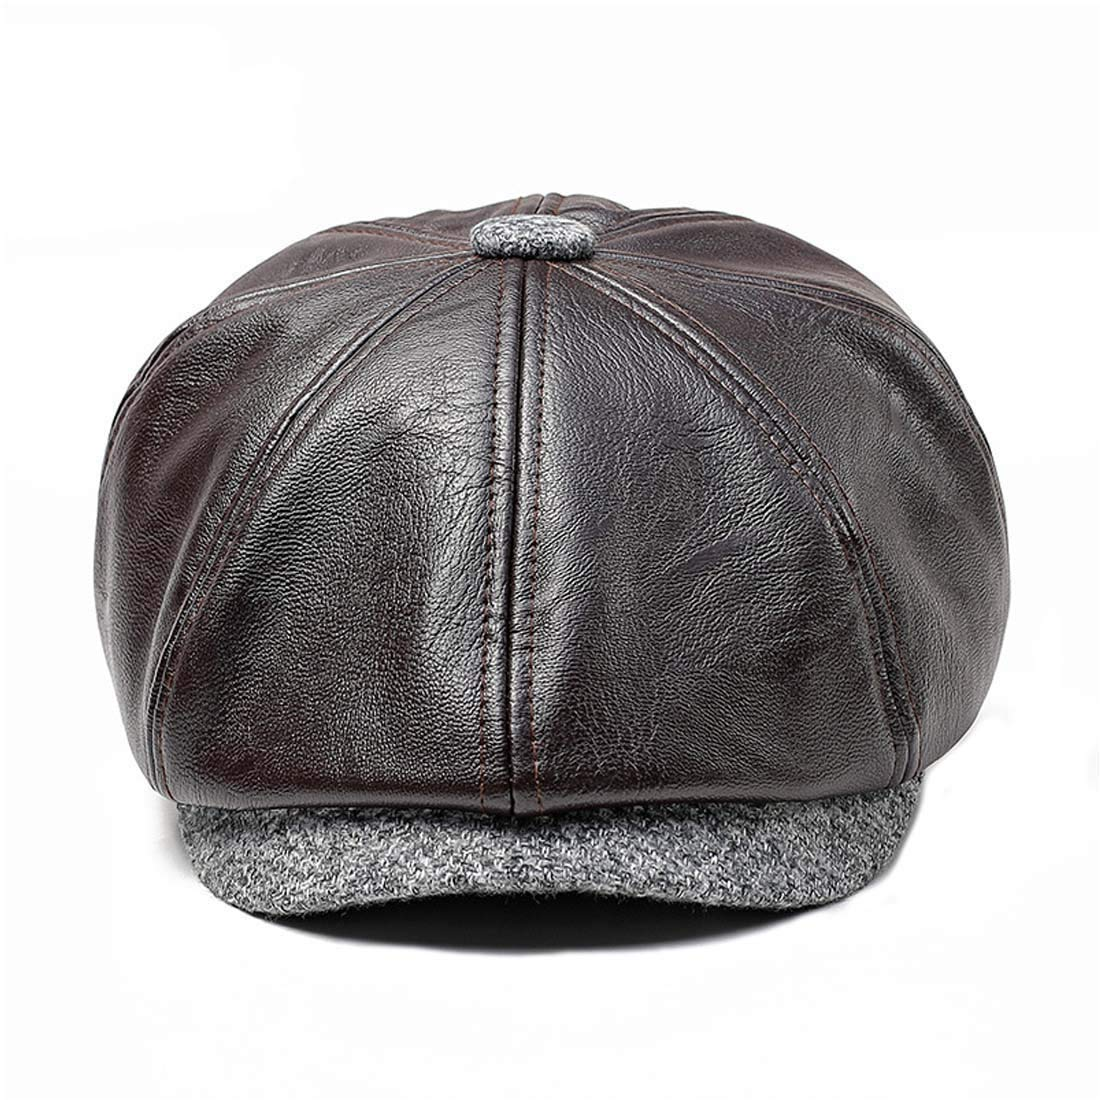 a44ba02f66f8b2 King Star Mens Vintage 8 Panel Leather Newsboy Cap Cabbie Driving Gatsby  Hats: Amazon.ca: Clothing & Accessories